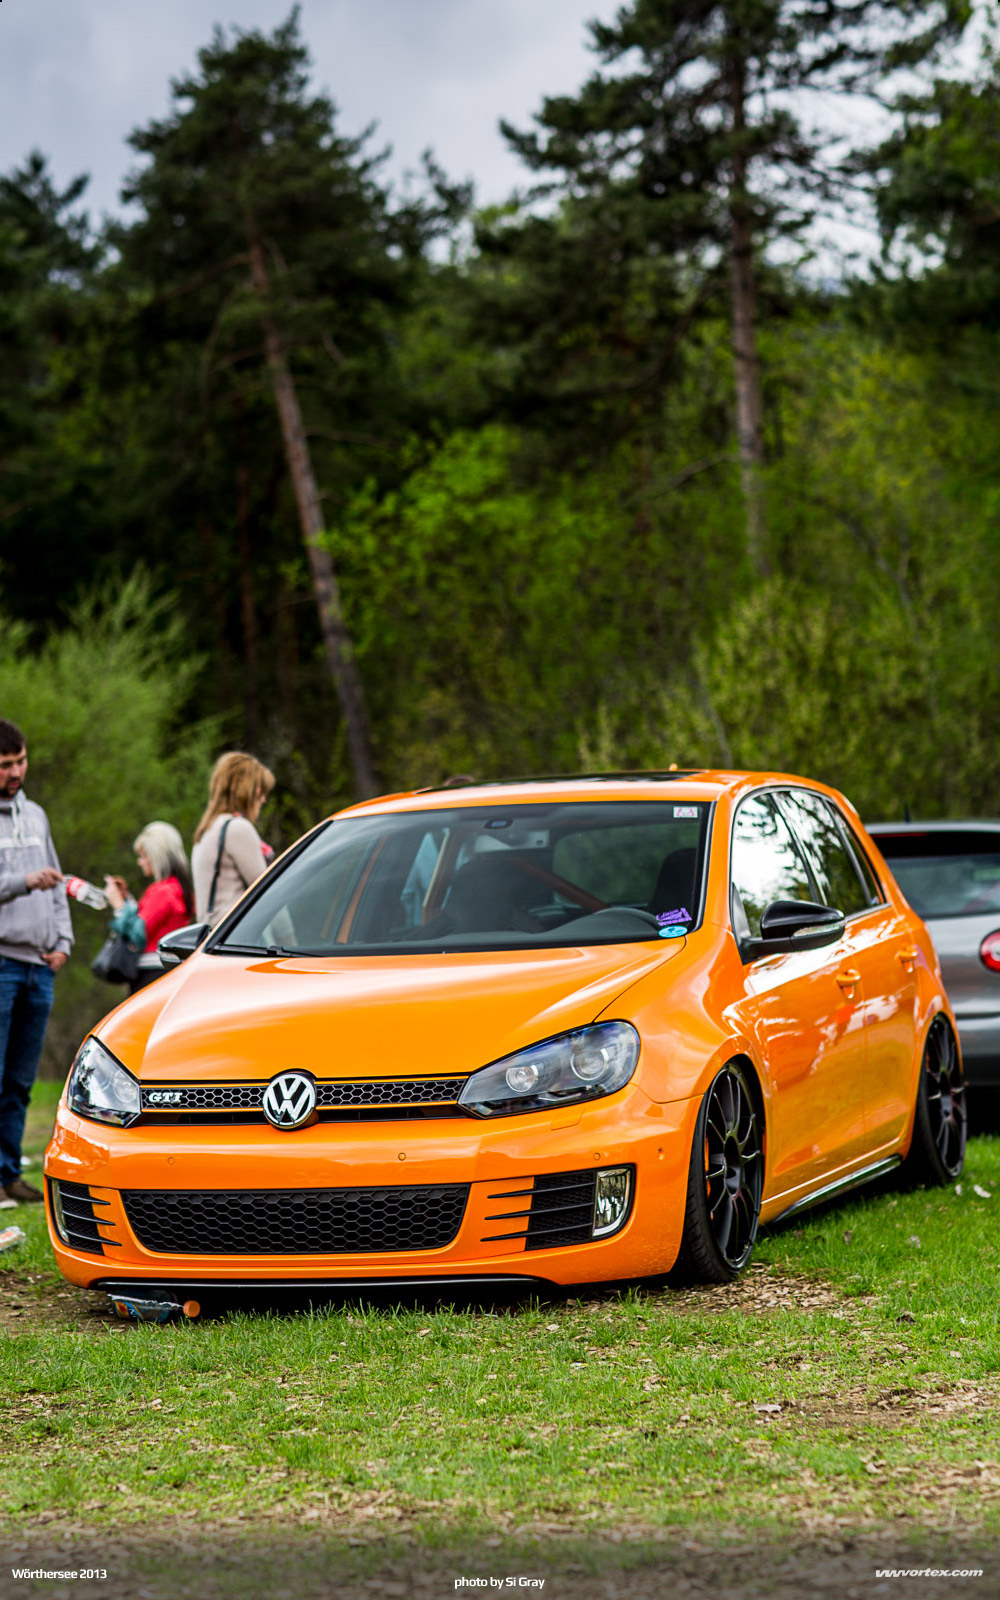 worthersee-2013-gallery-si-gray-055